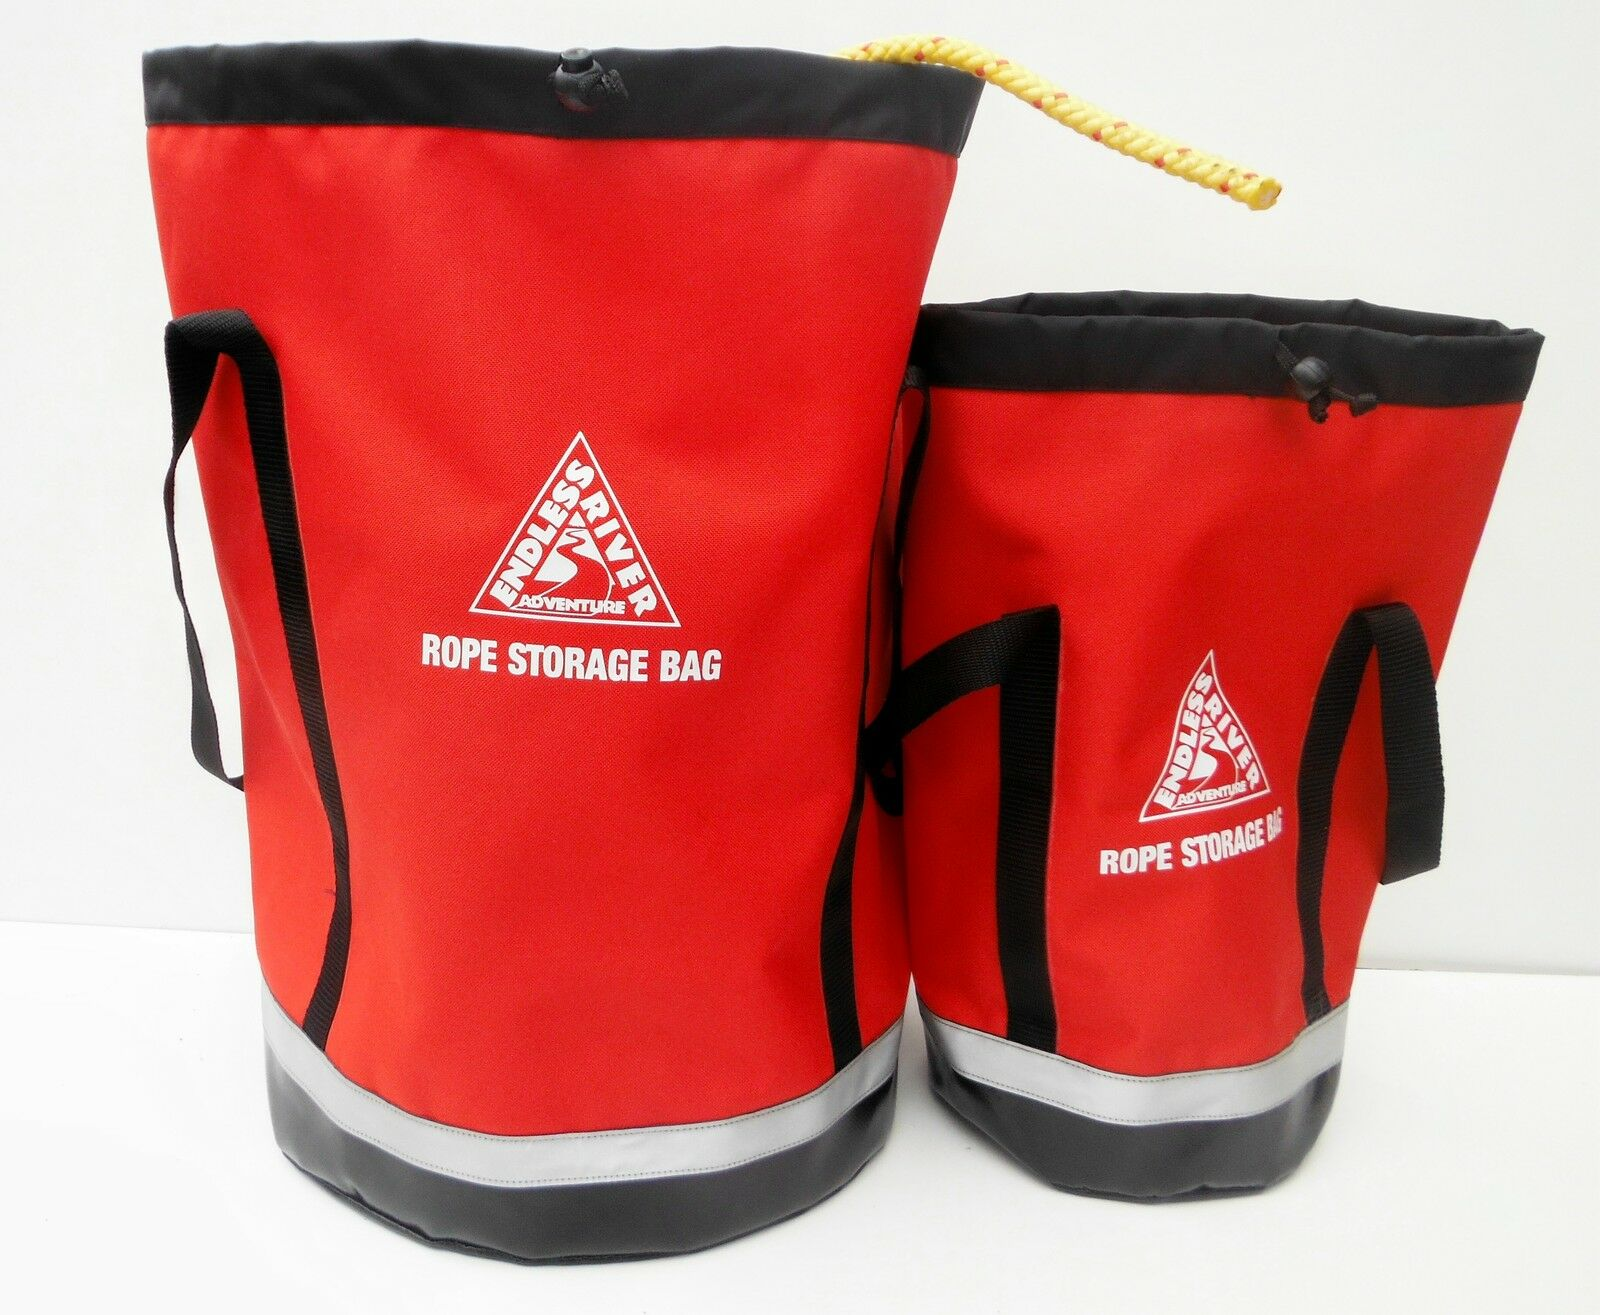 Rope Storage Bag - Heavy Duty Practical Size Choice